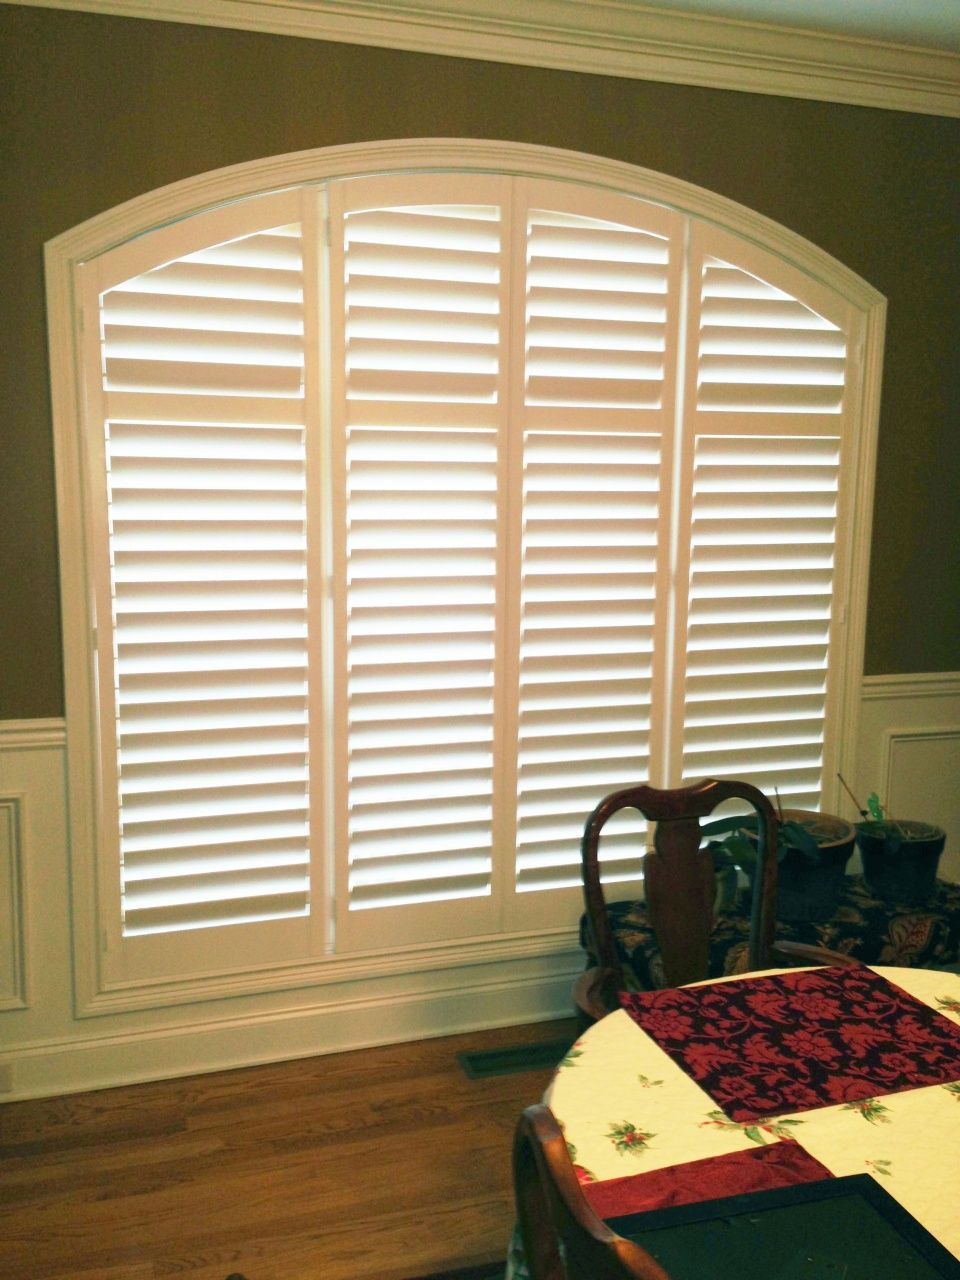 Wood Blinds for Arched Windows in 2020 Blinds for arched